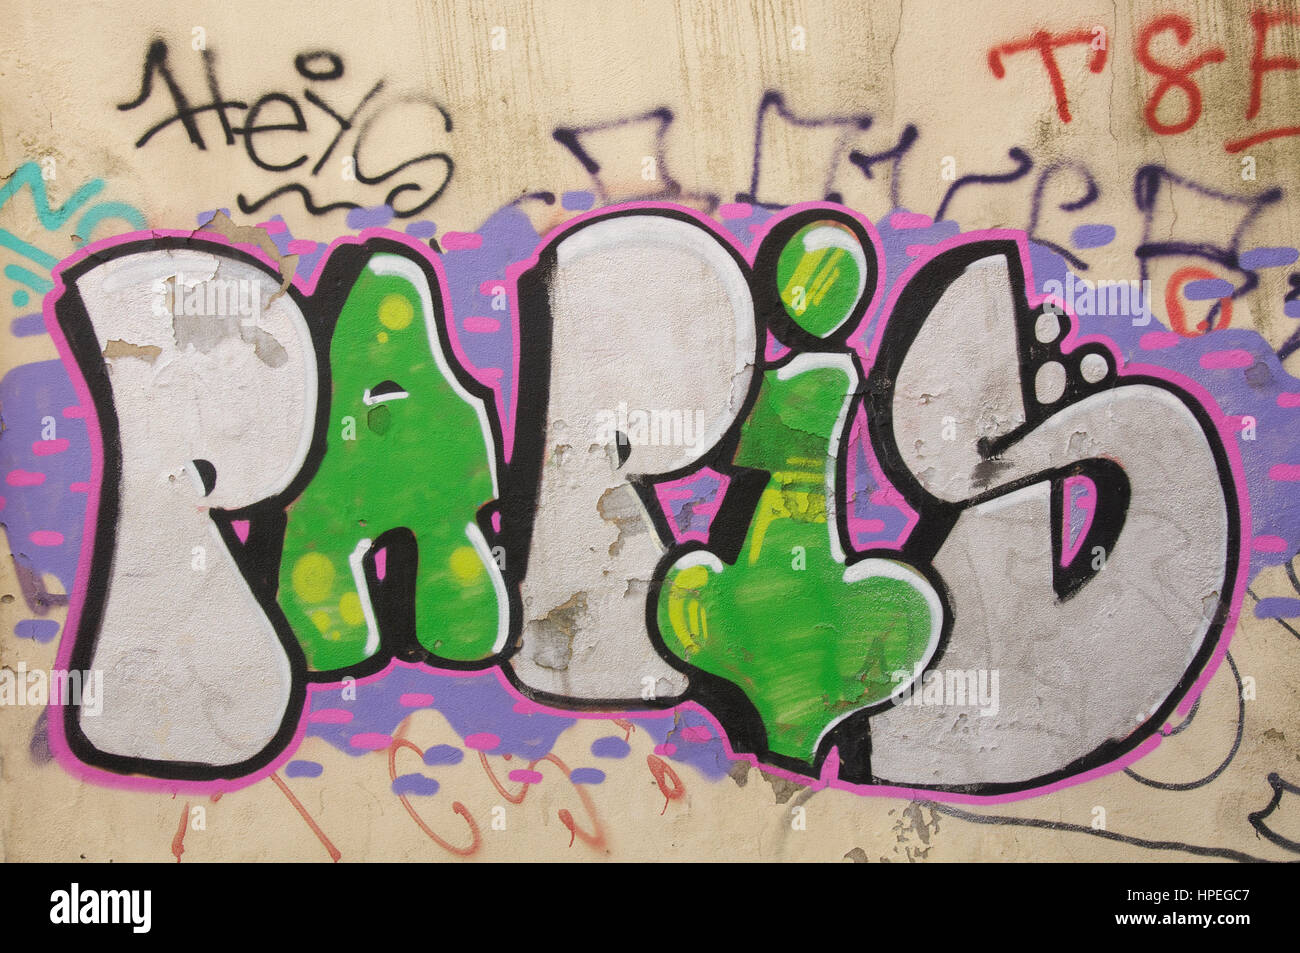 Urban Street Art Green And Silver Graffiti Letters Spray Painted On